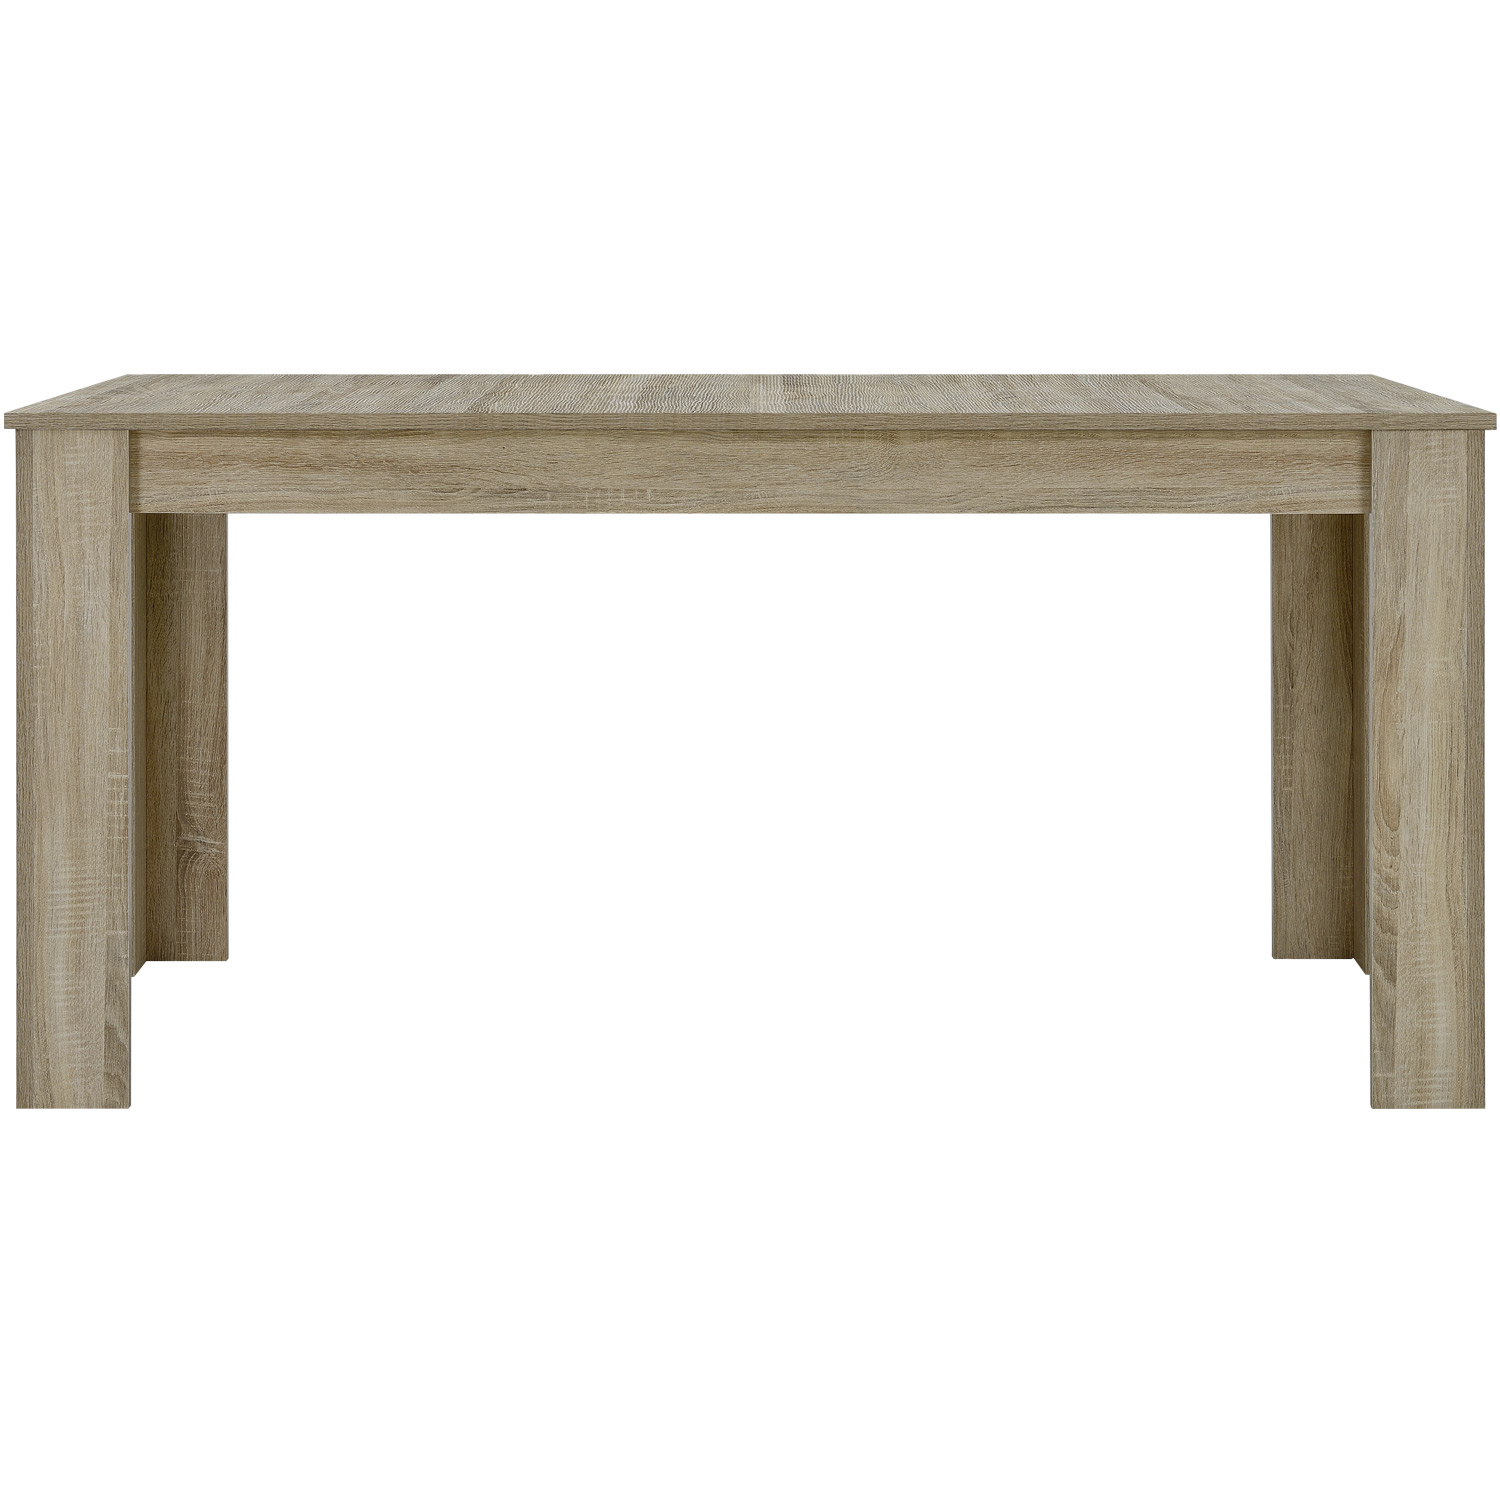 Manger oslo 160x90 table de salle ch ne for Table salle a manger qualite